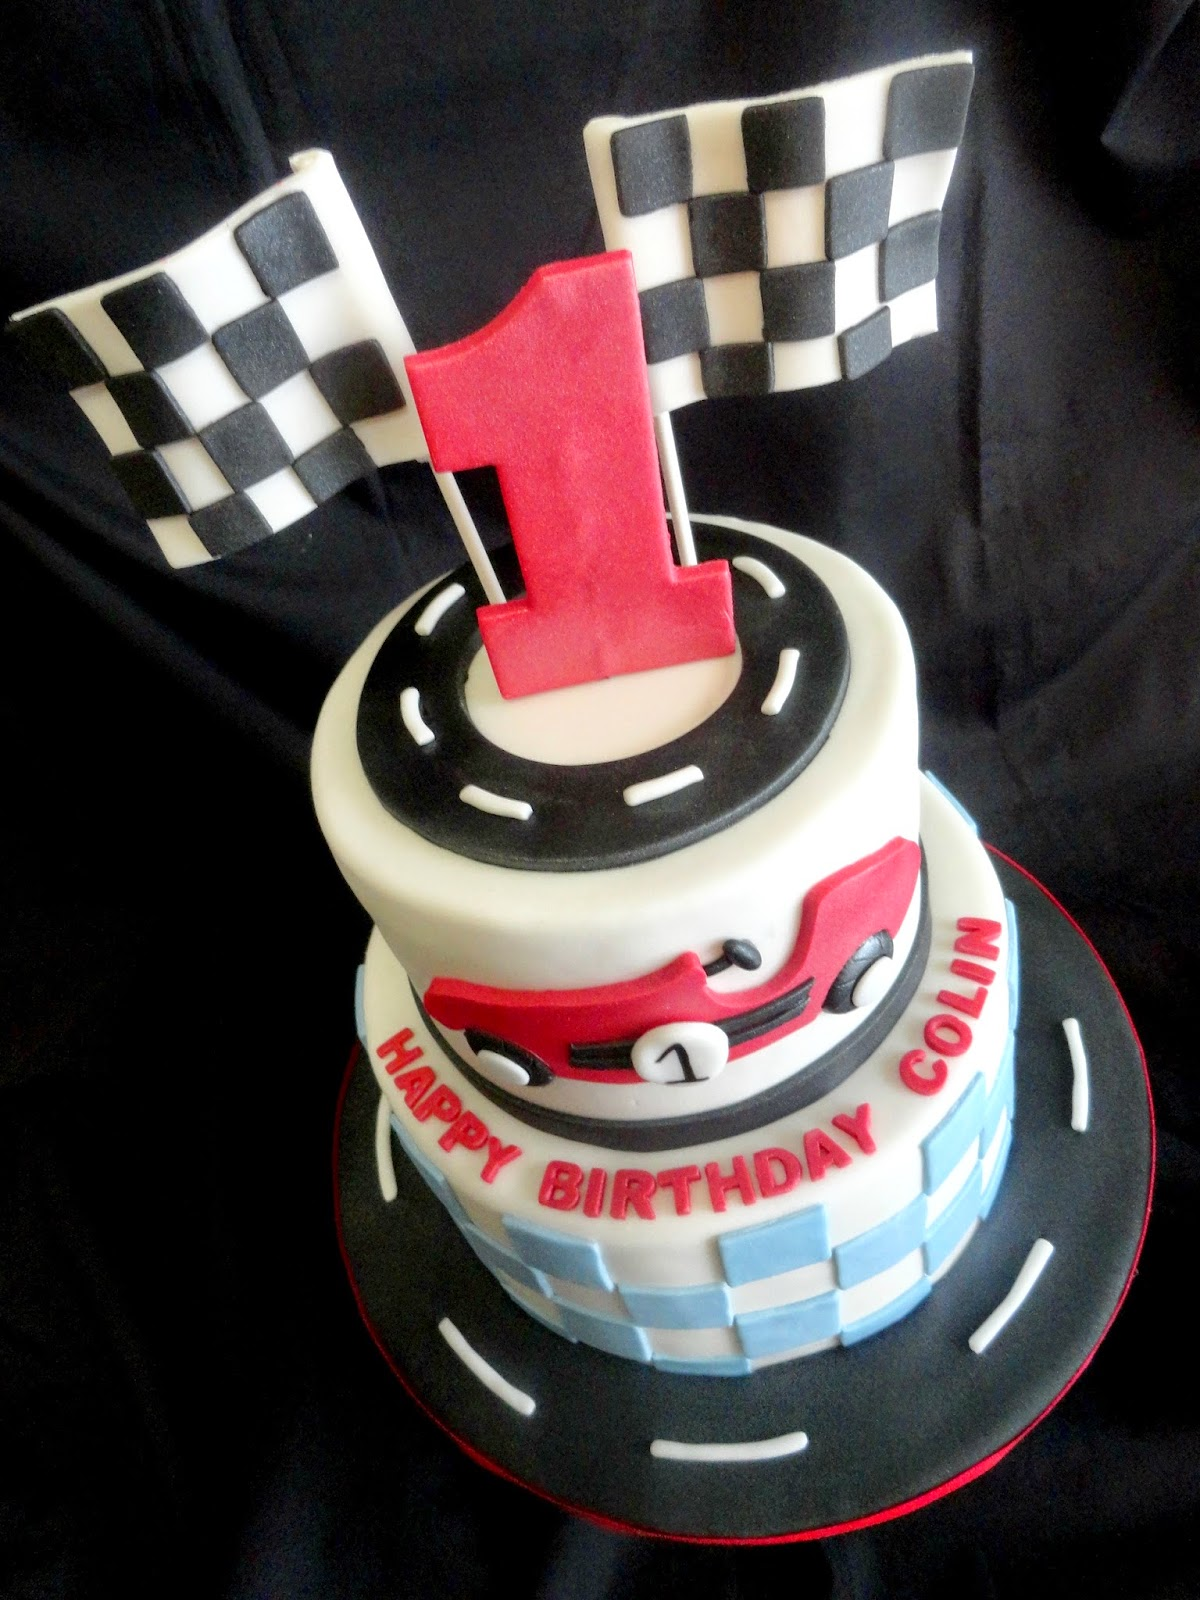 My Pink Little Cake Race Car Theme 1st Birthday Cake